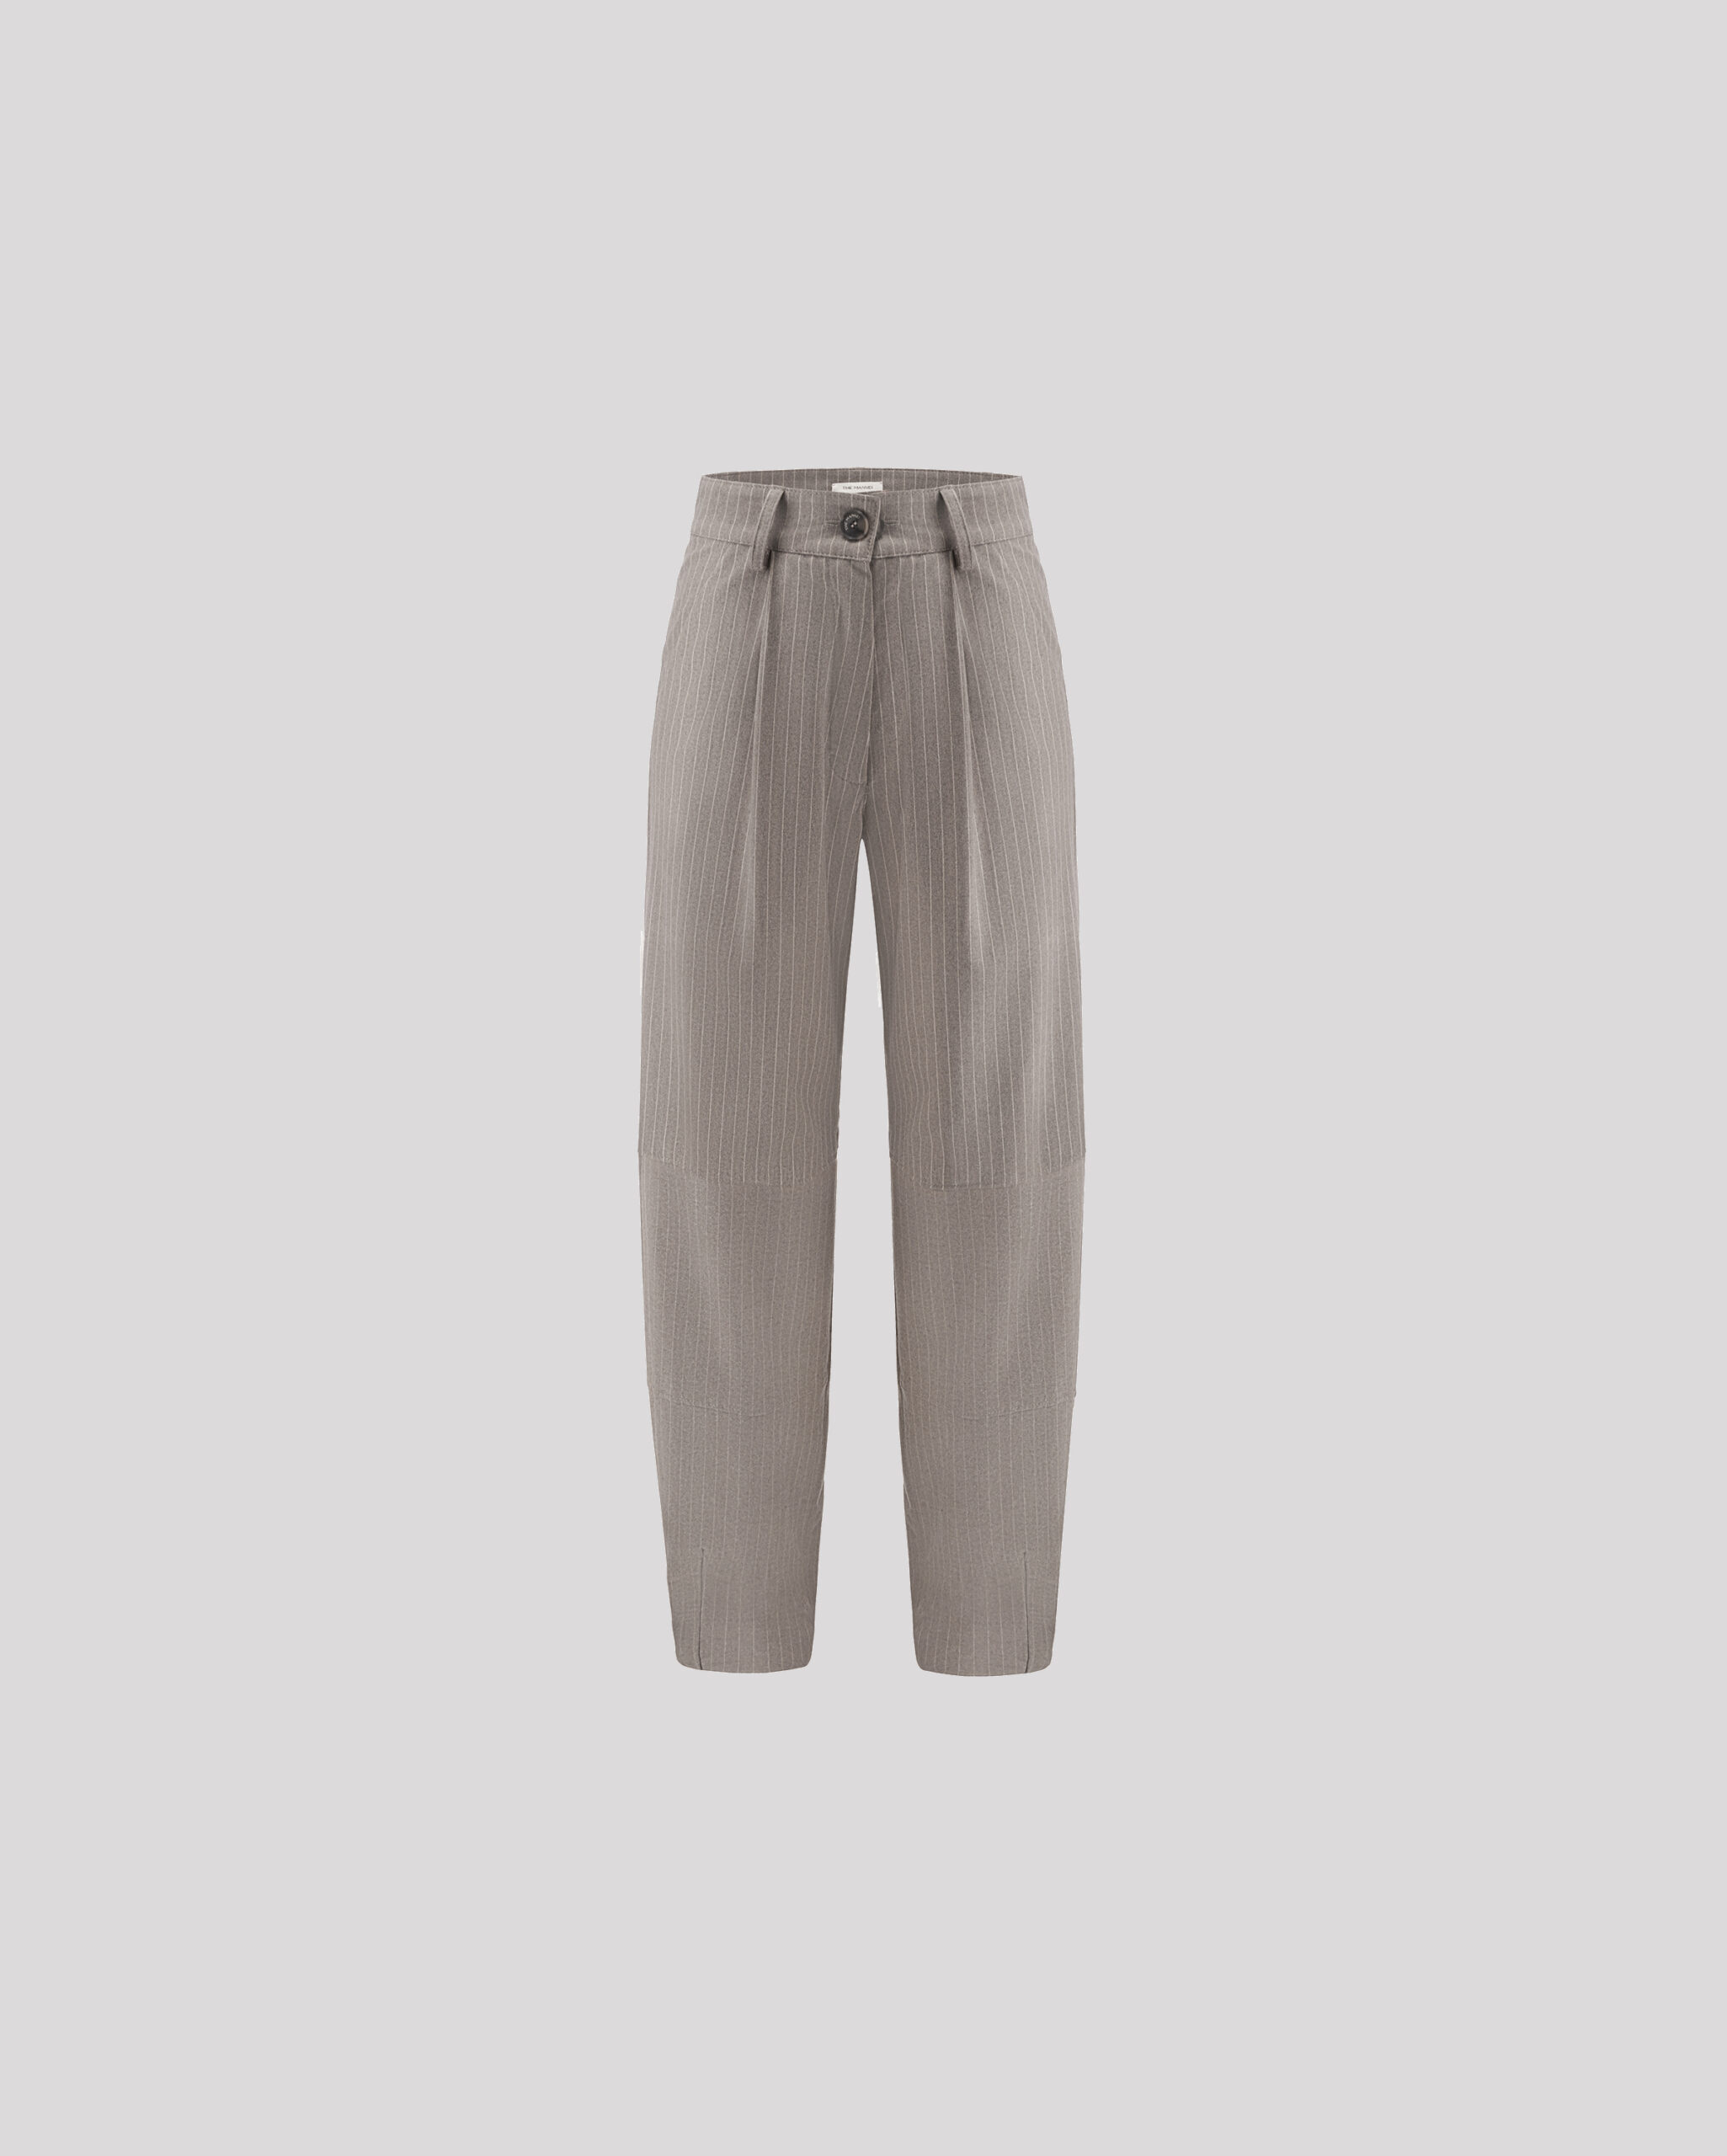 Tailored pants by PRATO PANTS IN TAUPE, available on themannei.com Hailey Baldwin Pants Exact Product